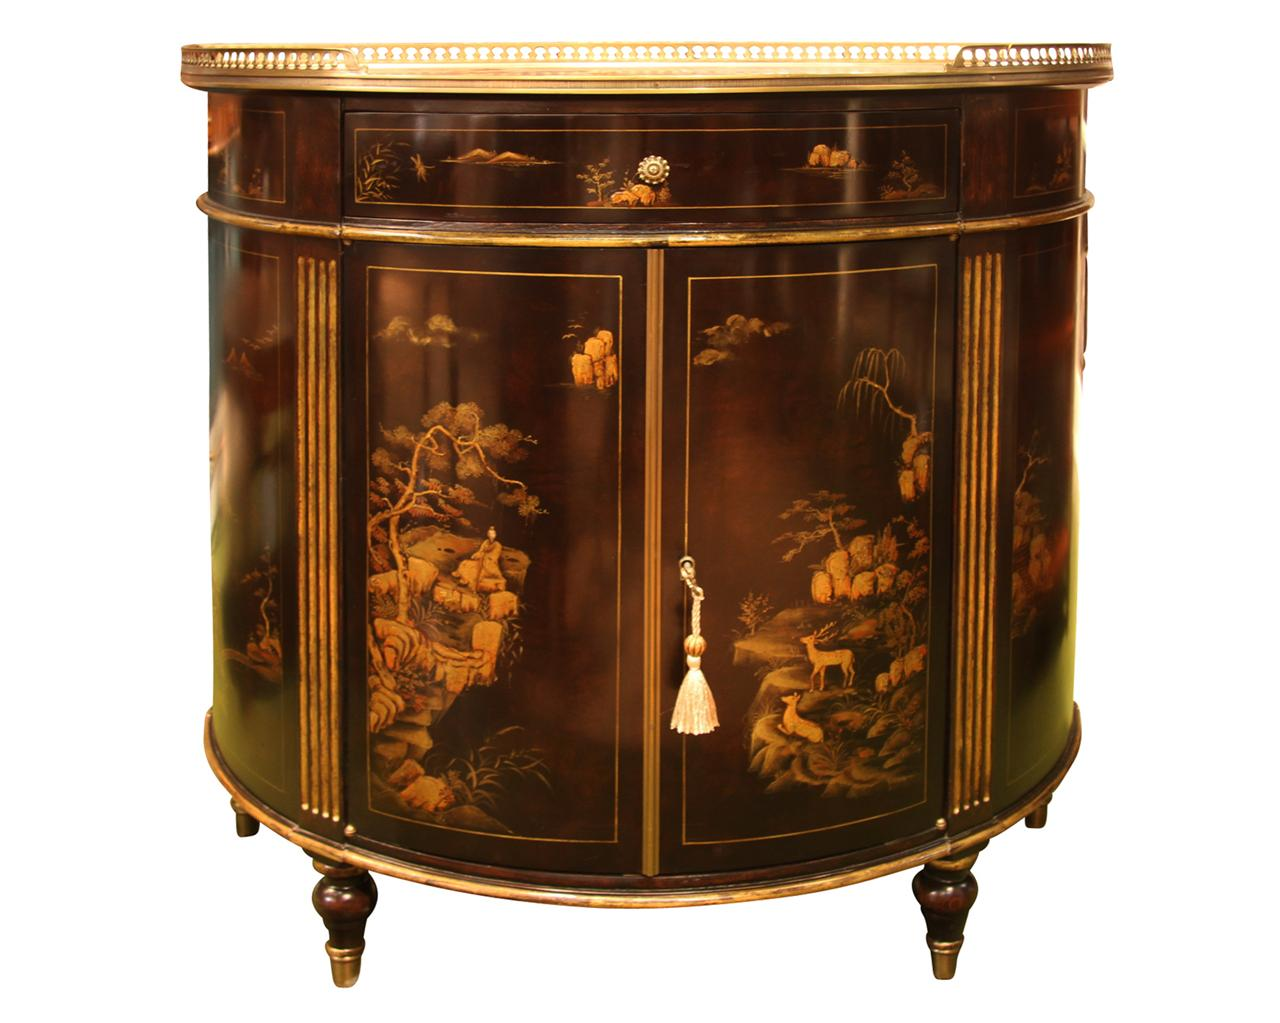 Chinoiserie Demilune or Bow Front Side Cabinet - Chinoiserie Demilune Or Bow Front Dining Cabinet